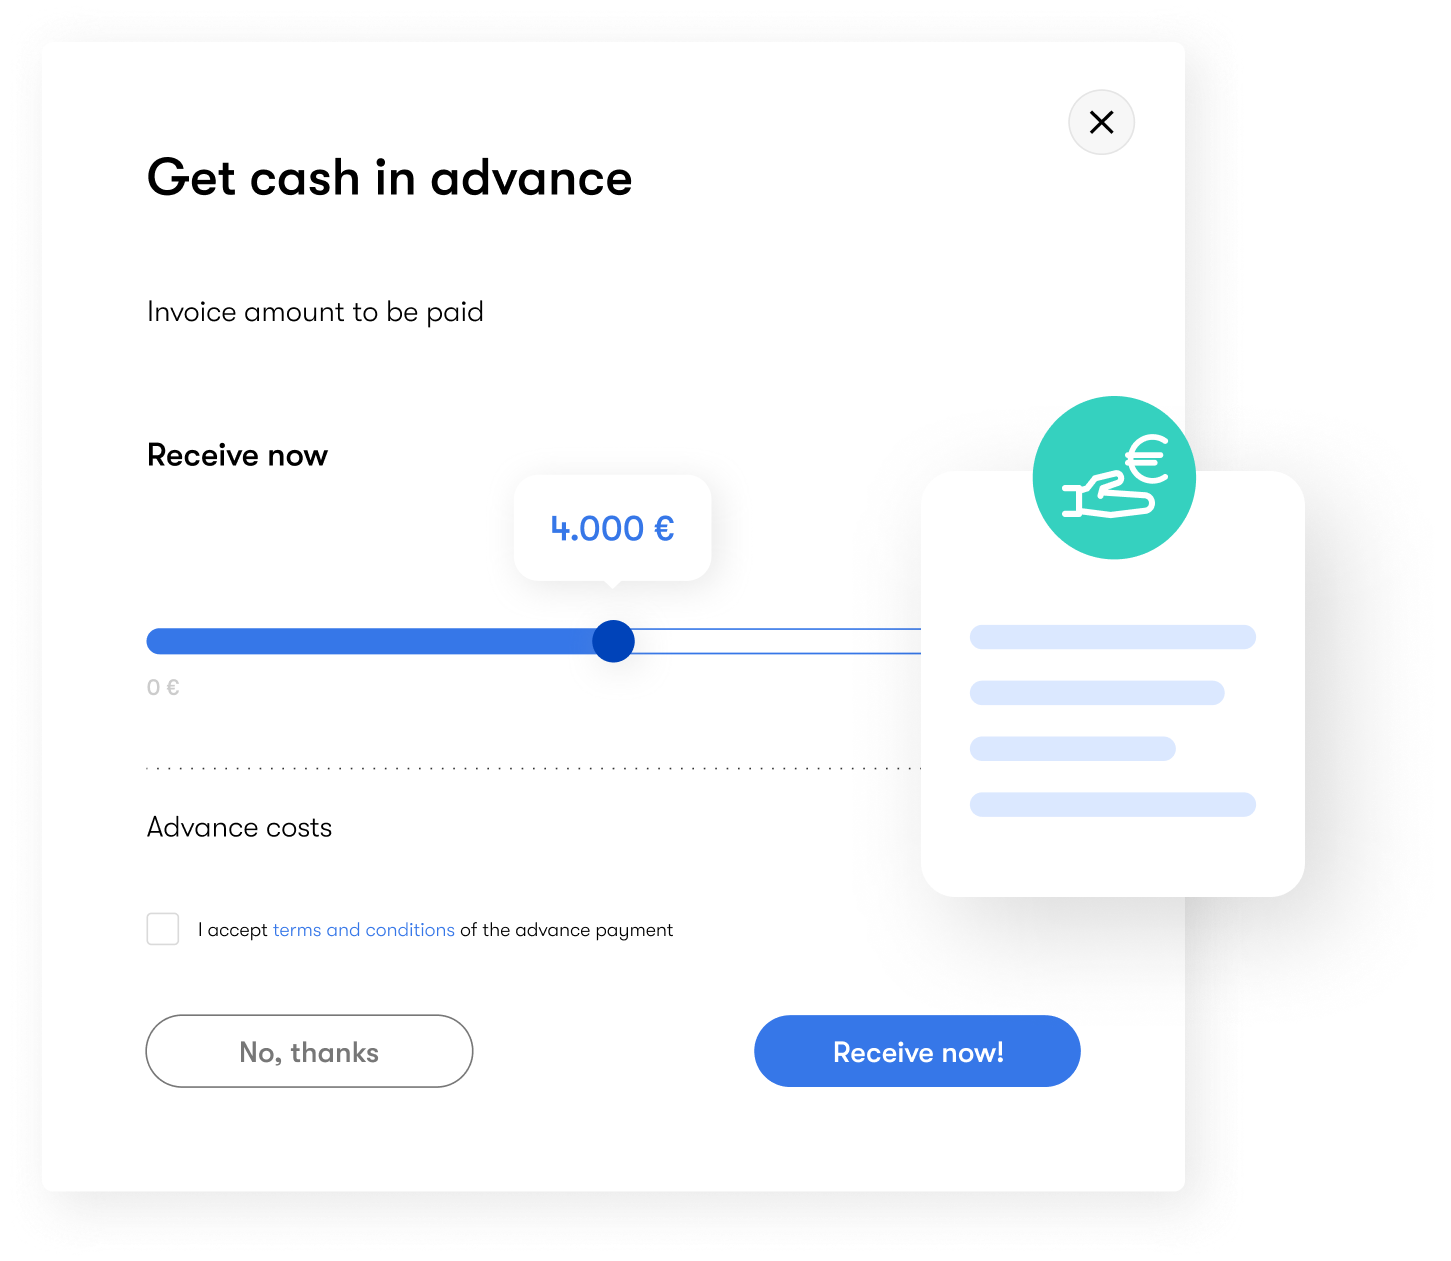 Cash advance for your business